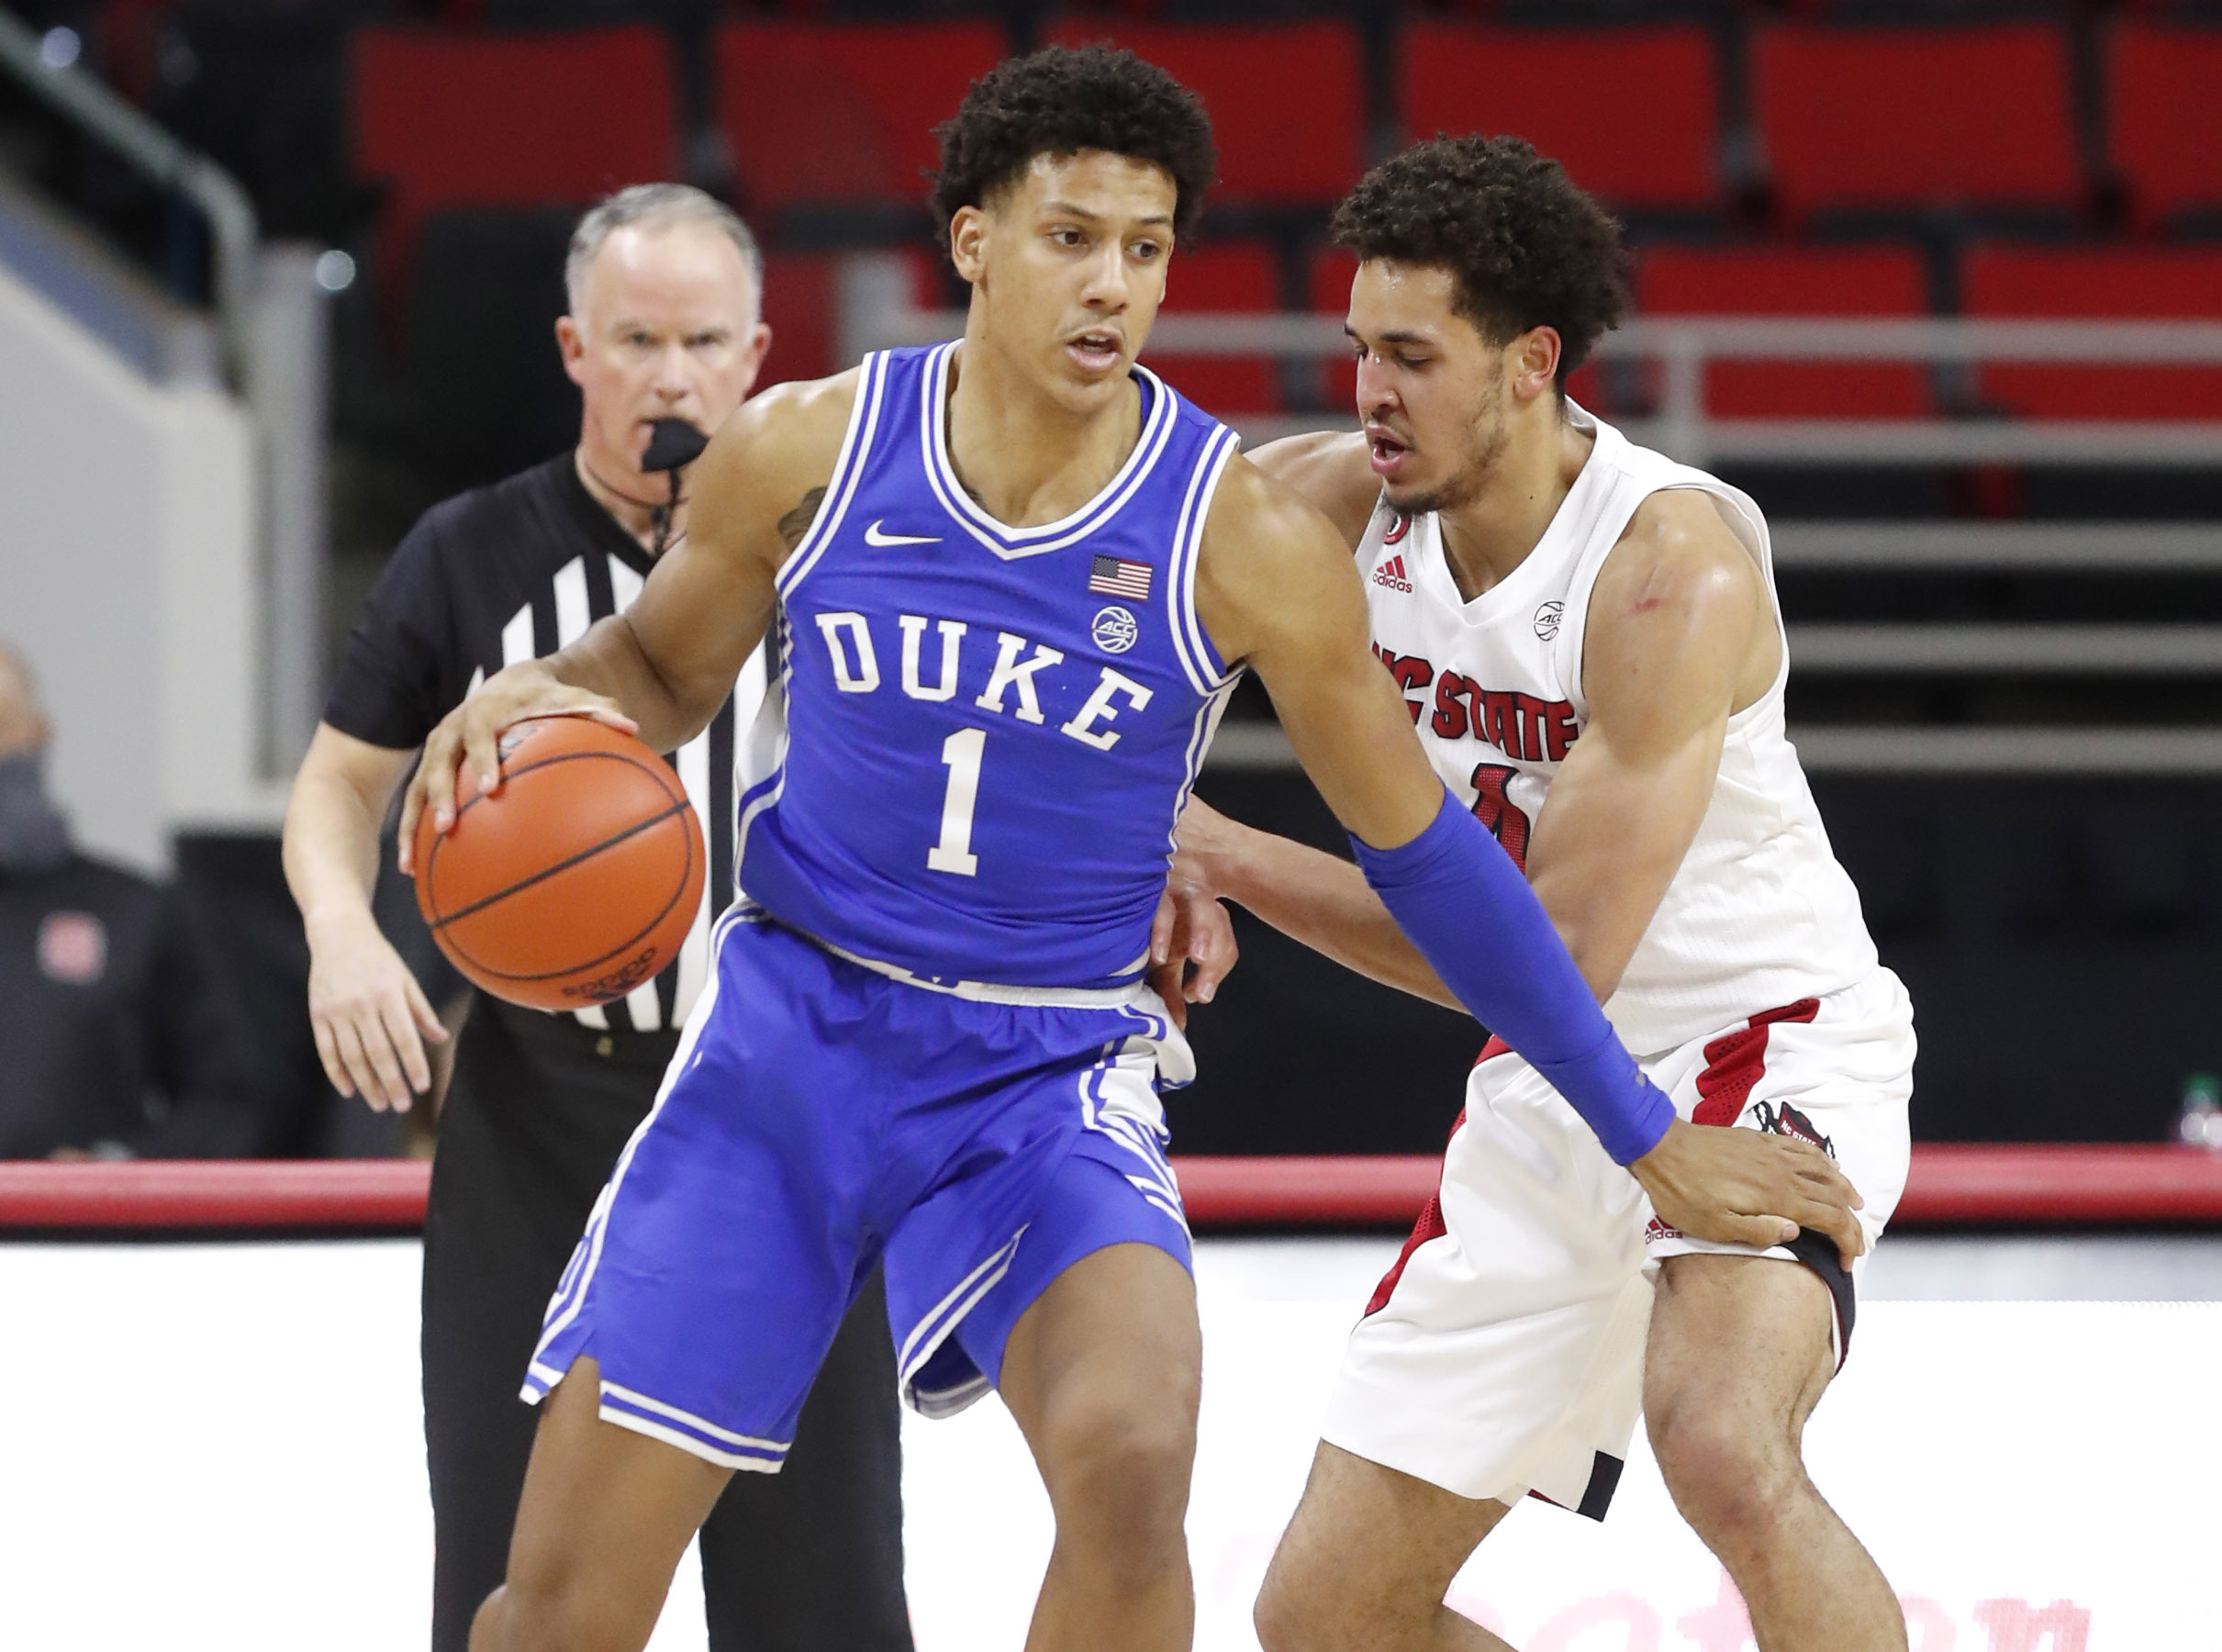 Duke's Jalen Johnson (1) looks for space as N.C. State's Jericole Hellems (4) defends during the first half of an NCAA college basketball game against North Carolina State in Raleigh, N.C., Saturday, Feb. 13, 2021.